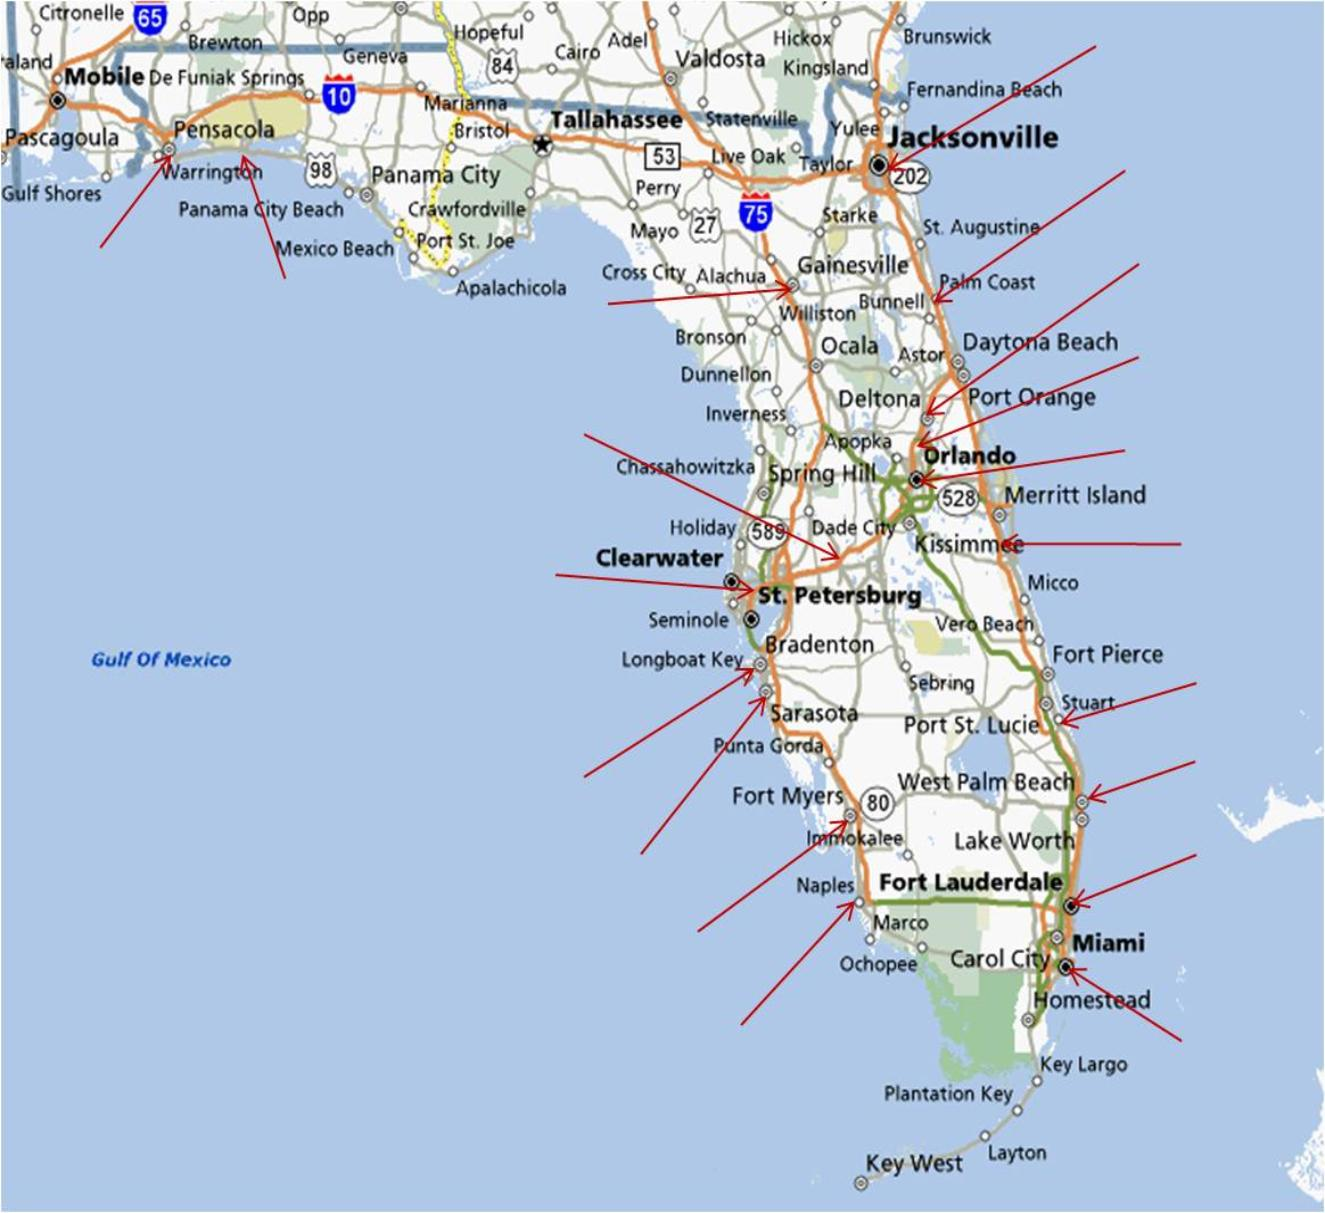 Orlando Florida Map.Map Of Florida Running Stores